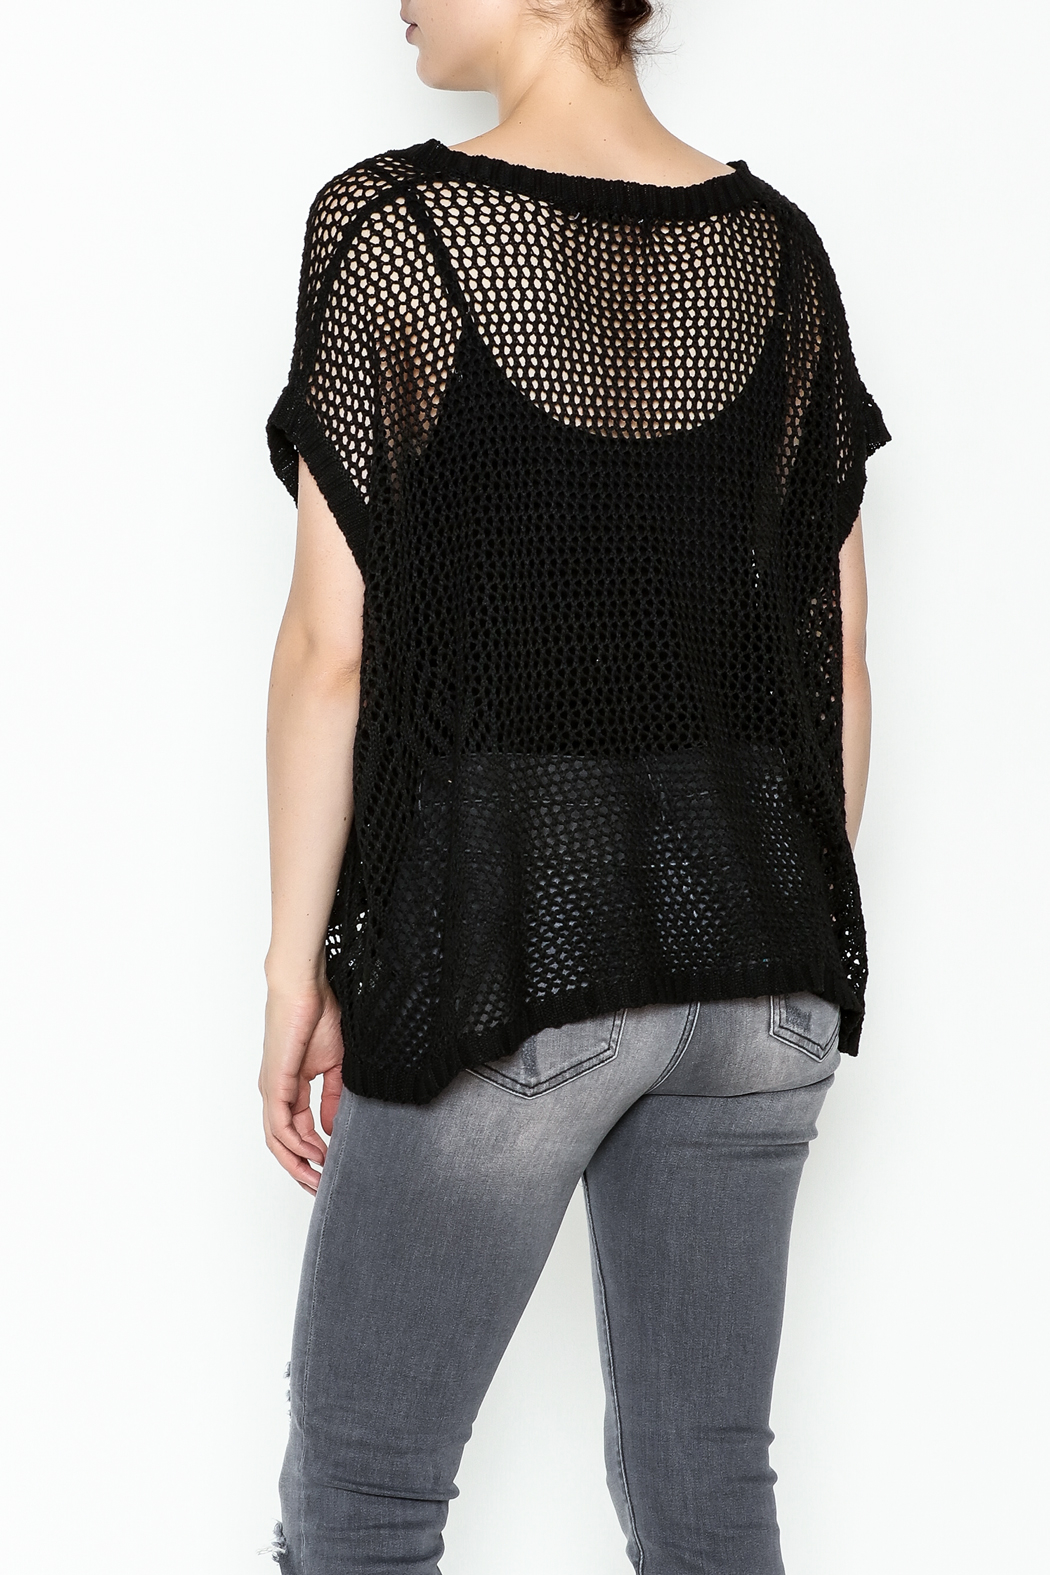 Elise Woven Knit Pullover - Back Cropped Image